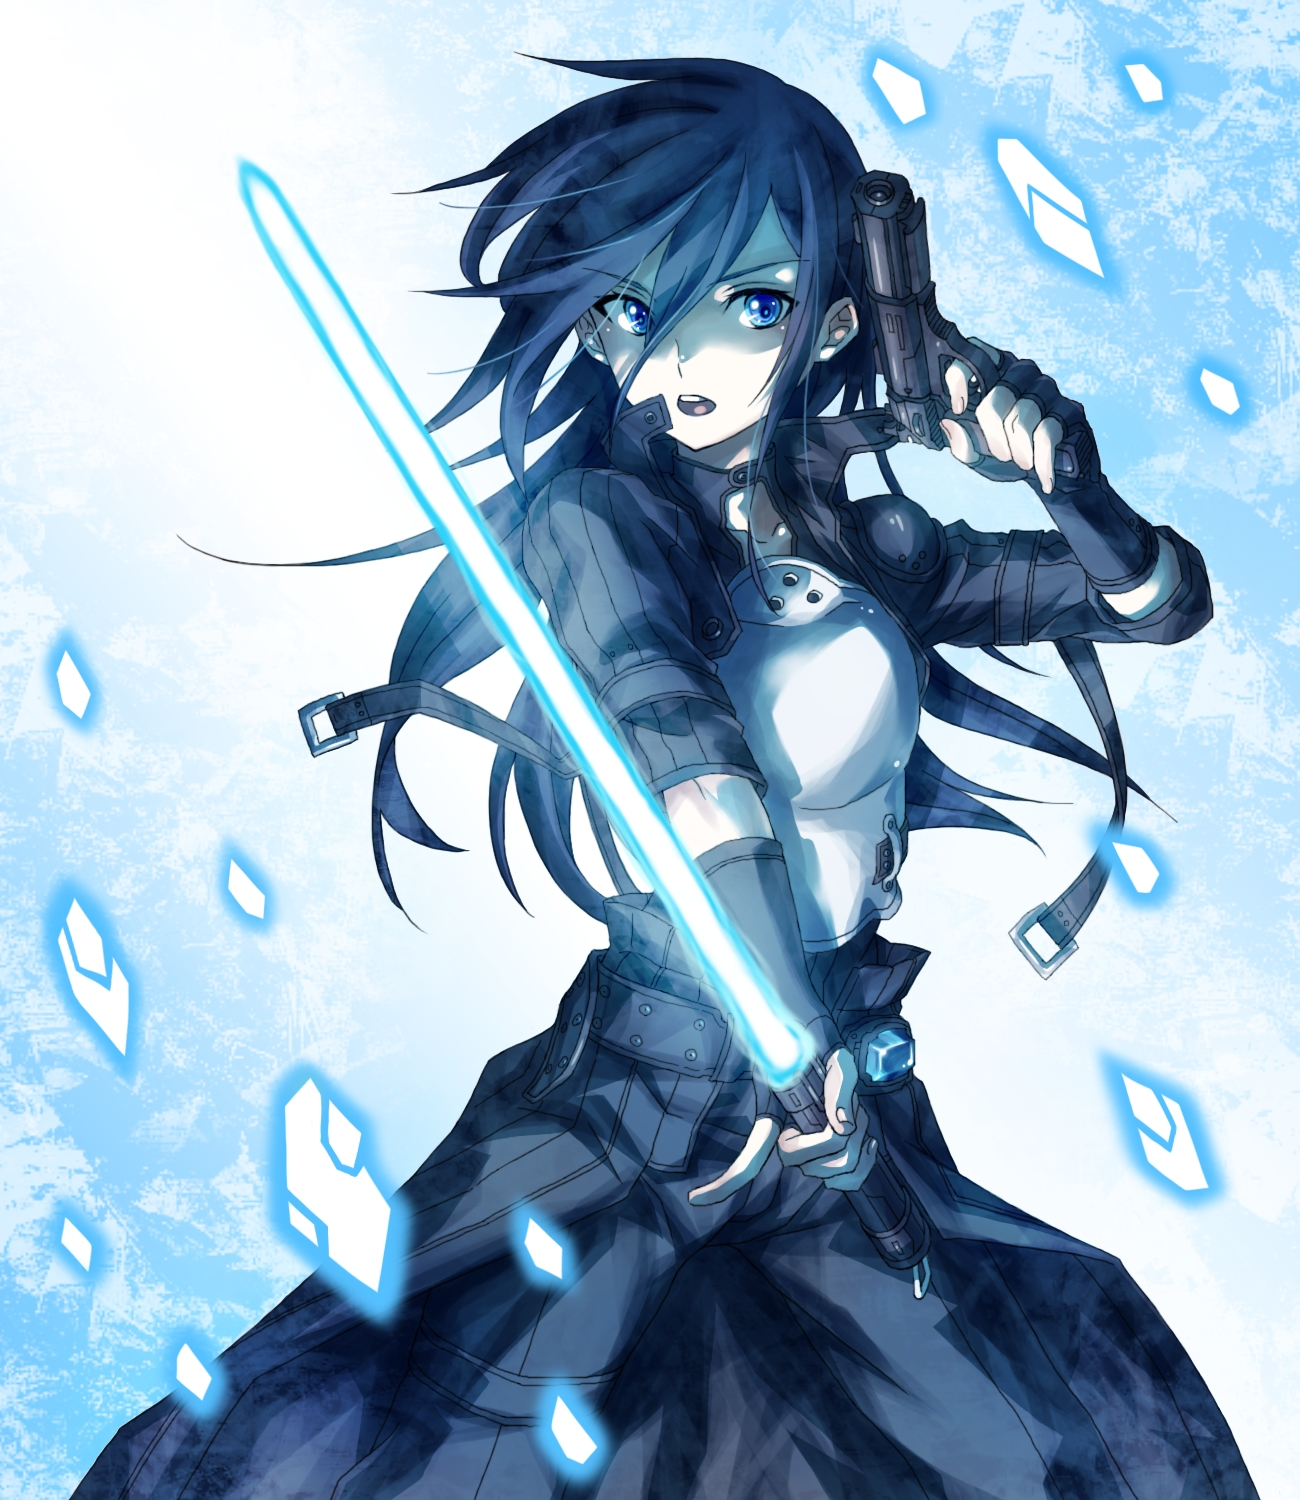 Commande Kit avatar/ signature Kirito_(GunGameOnline_form)